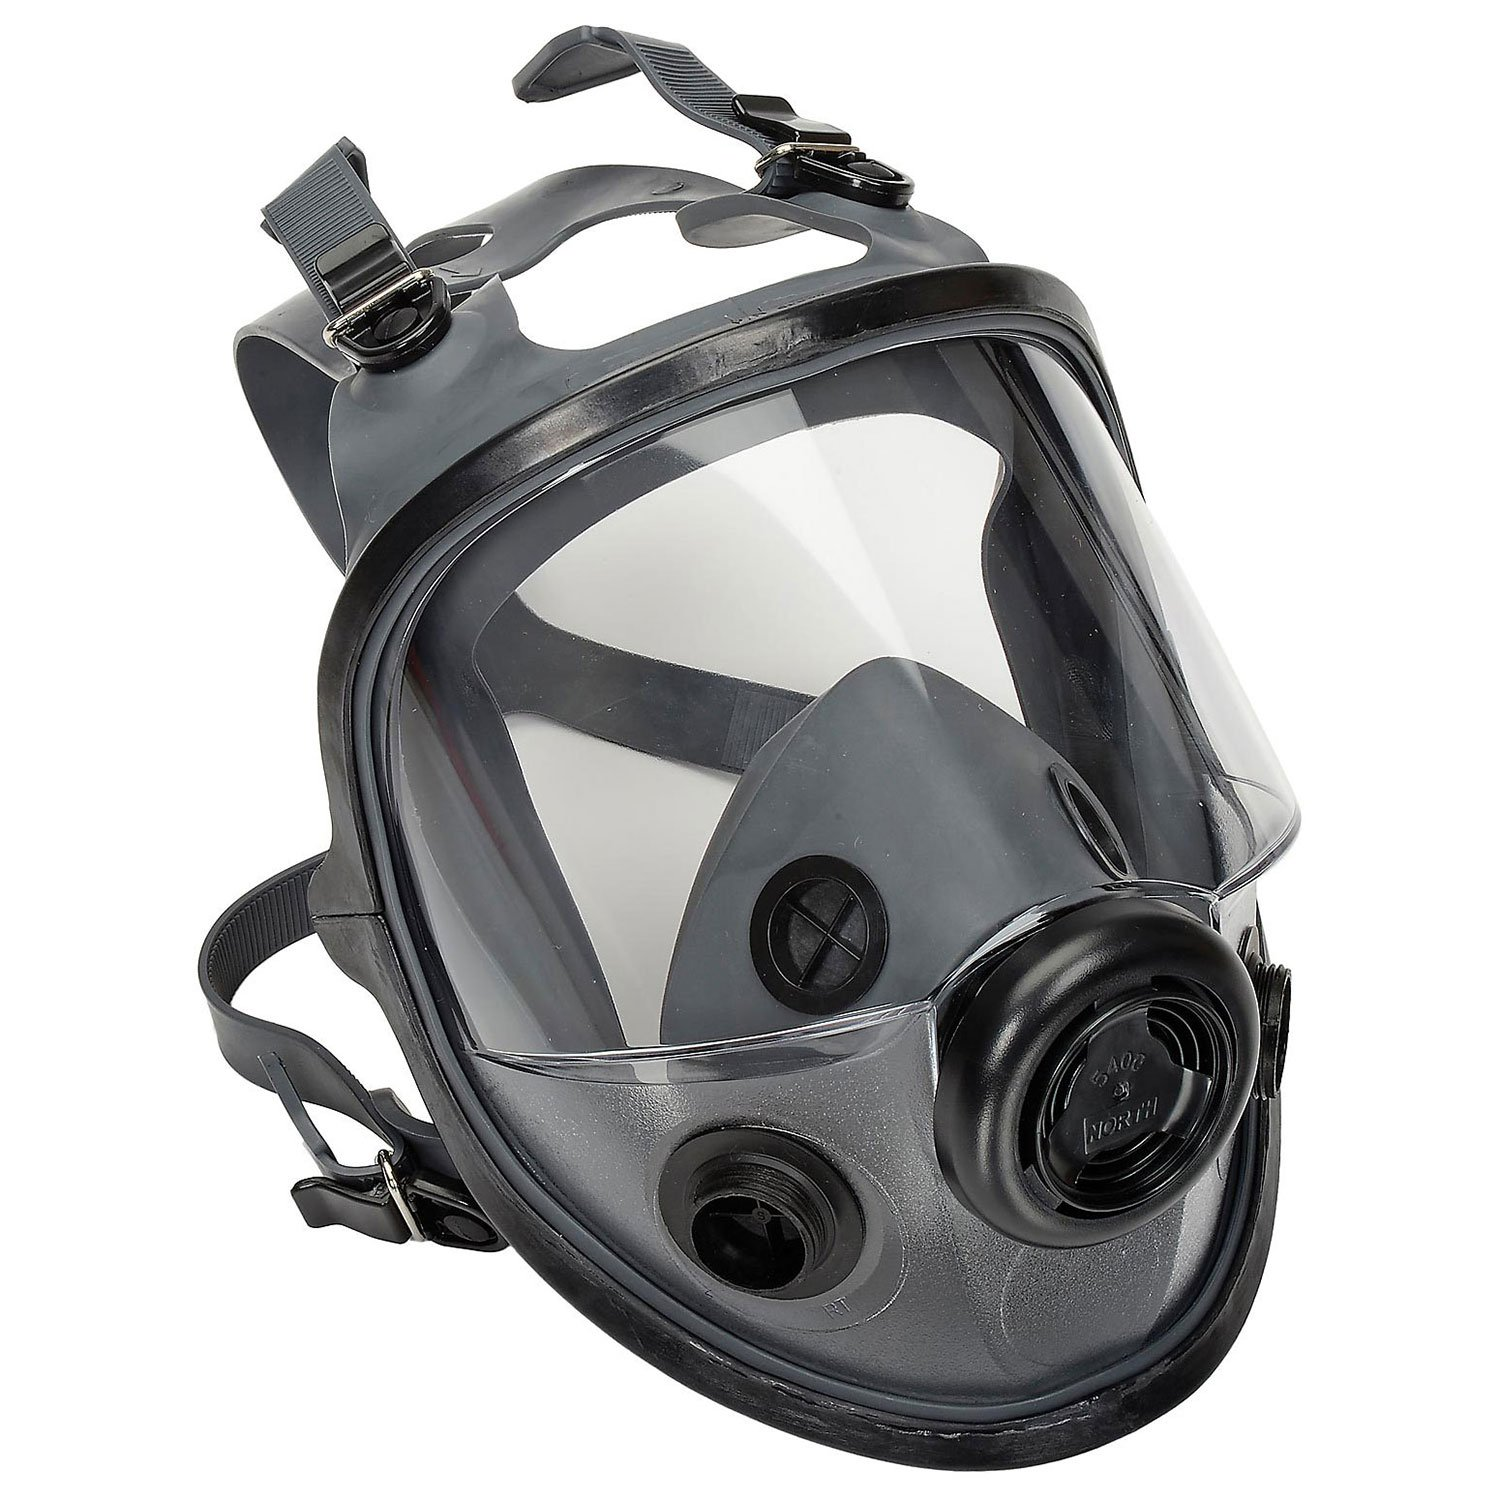 North by Honeywell 54001 5400 Series Low Maintenance Full Facepiece Respirators, Medium/Large